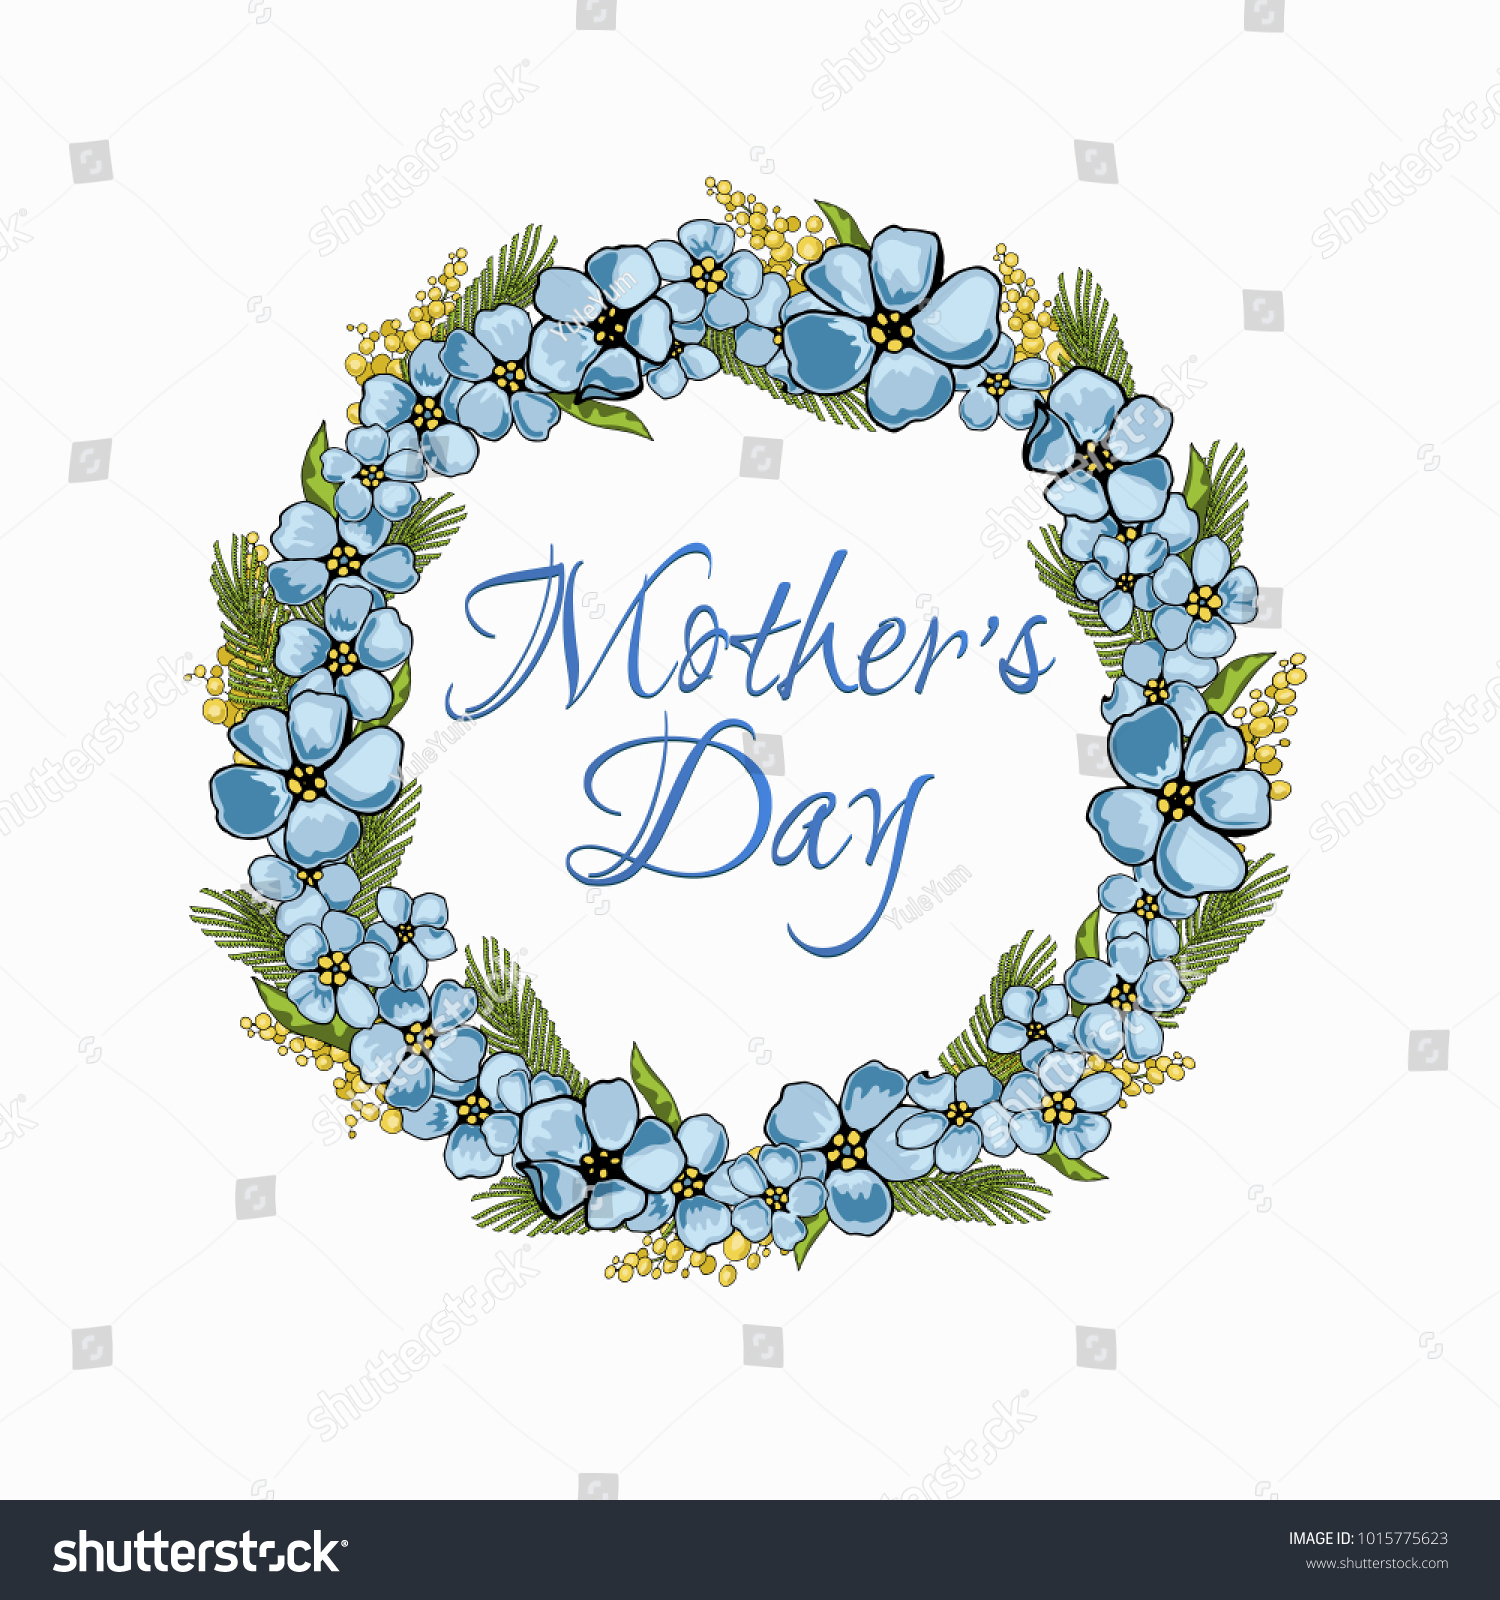 Greeting card mothers day spring flowers stock vector royalty free greeting card for mothers day spring flowers vector illustration with forget me m4hsunfo